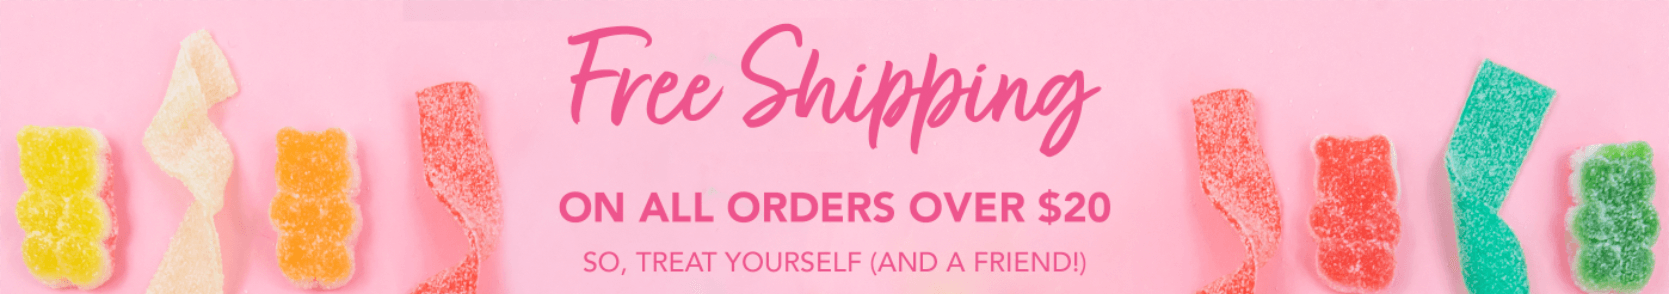 Free Shipping on all orders over $20